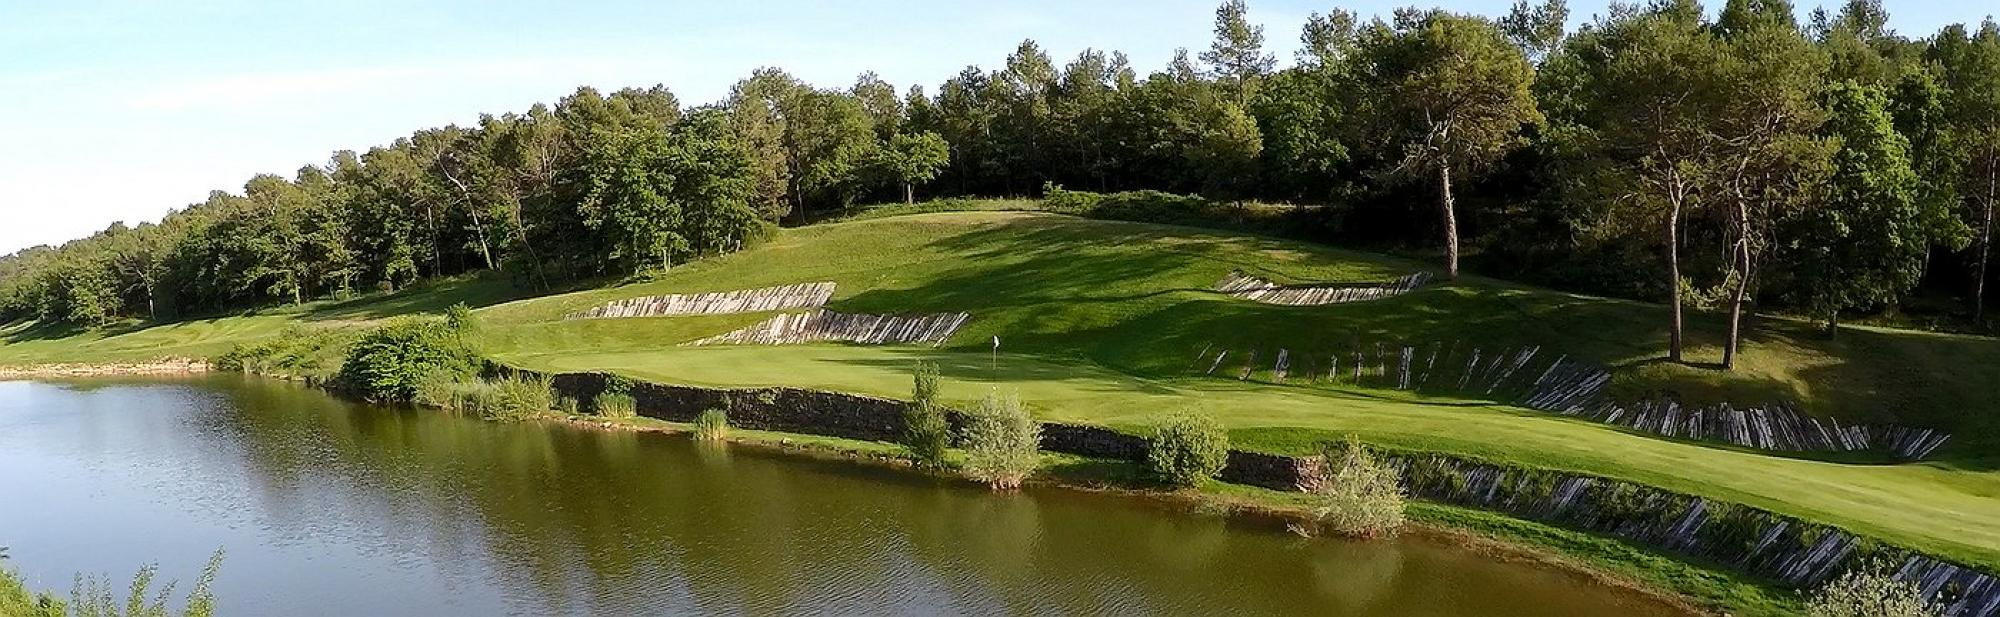 All The Golf de Barbaroux's beautiful golf course in amazing South of France.